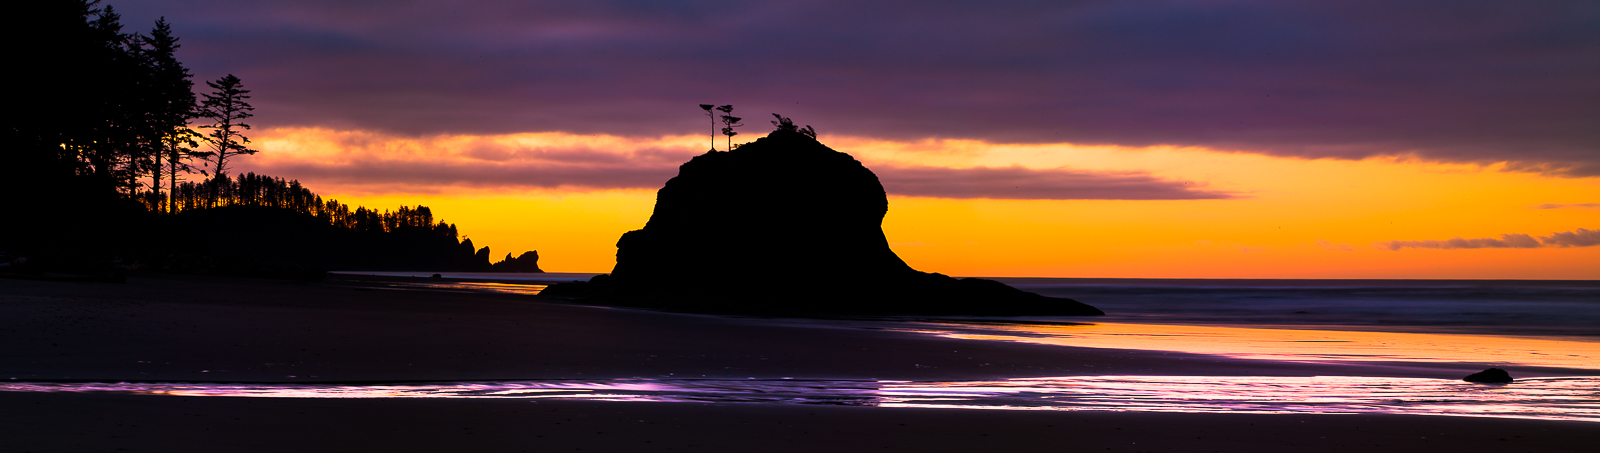 Western coastline offers sea stack silhouettes scattered across the shoreline bathed in purple and gold of the sunrise.